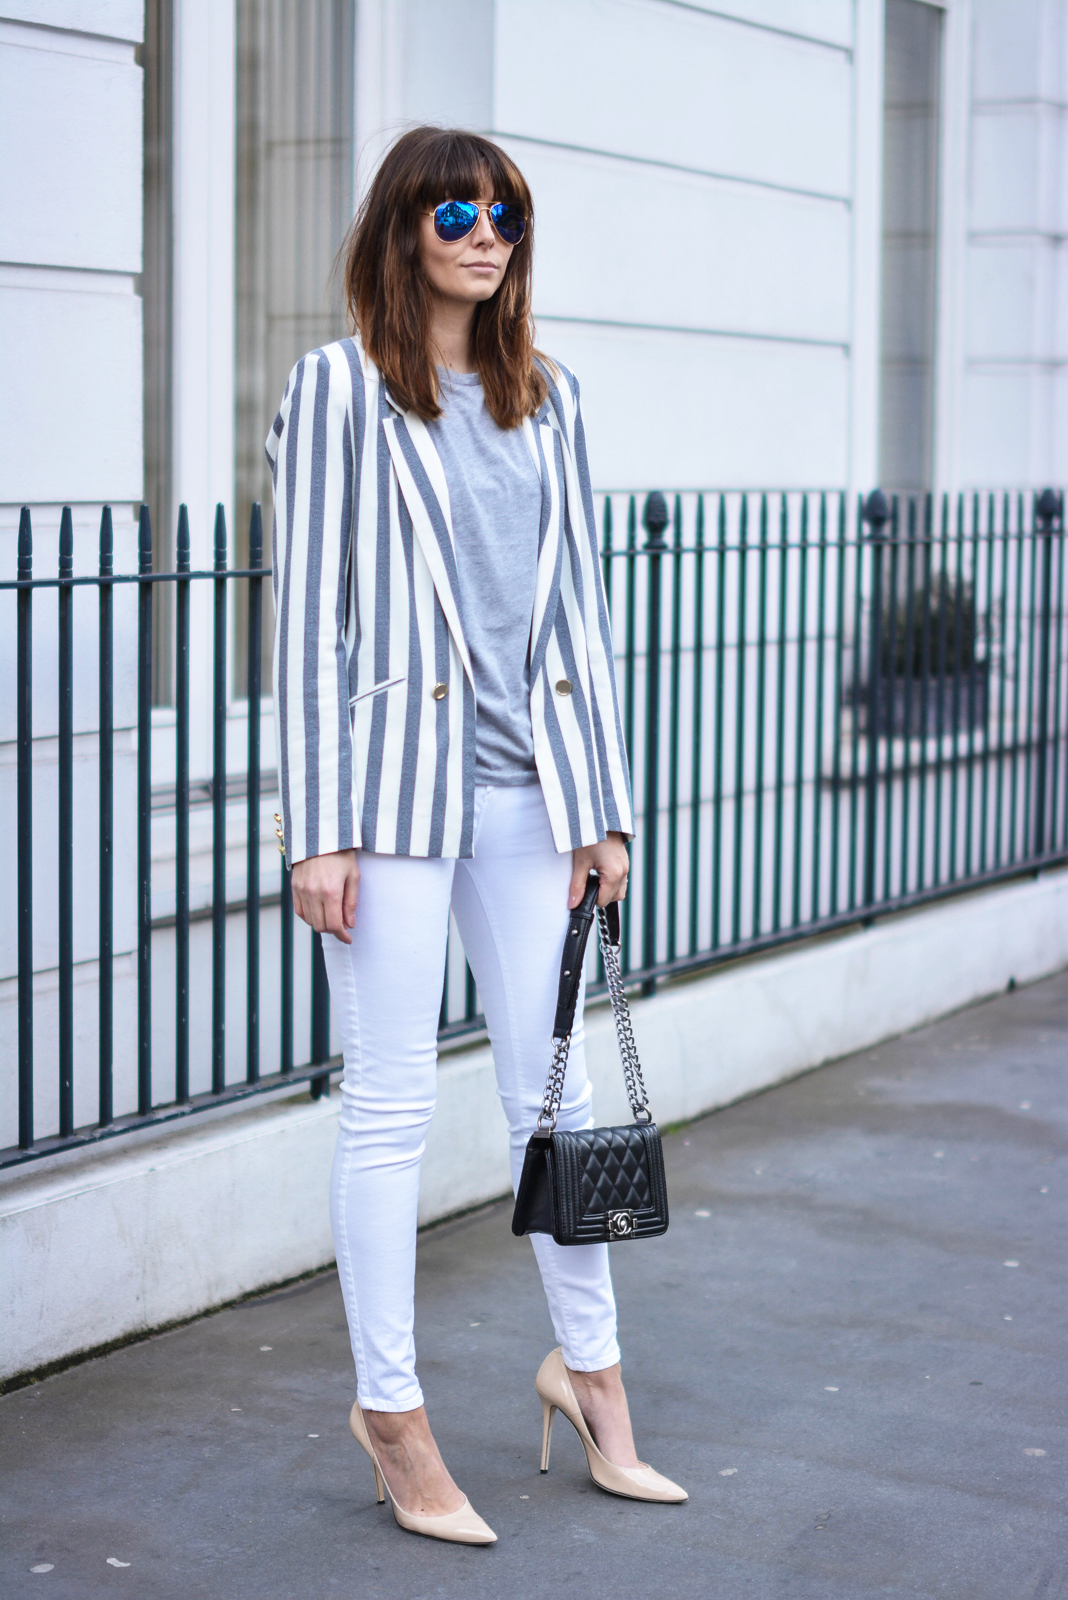 EJSTYLE - Emma Hill, River Island white skinny jeans, River Island stripe blazer, black Chanel Boy bag, Daniel footwear nude court shoes, polarised Ray Ban aviators, OOTD